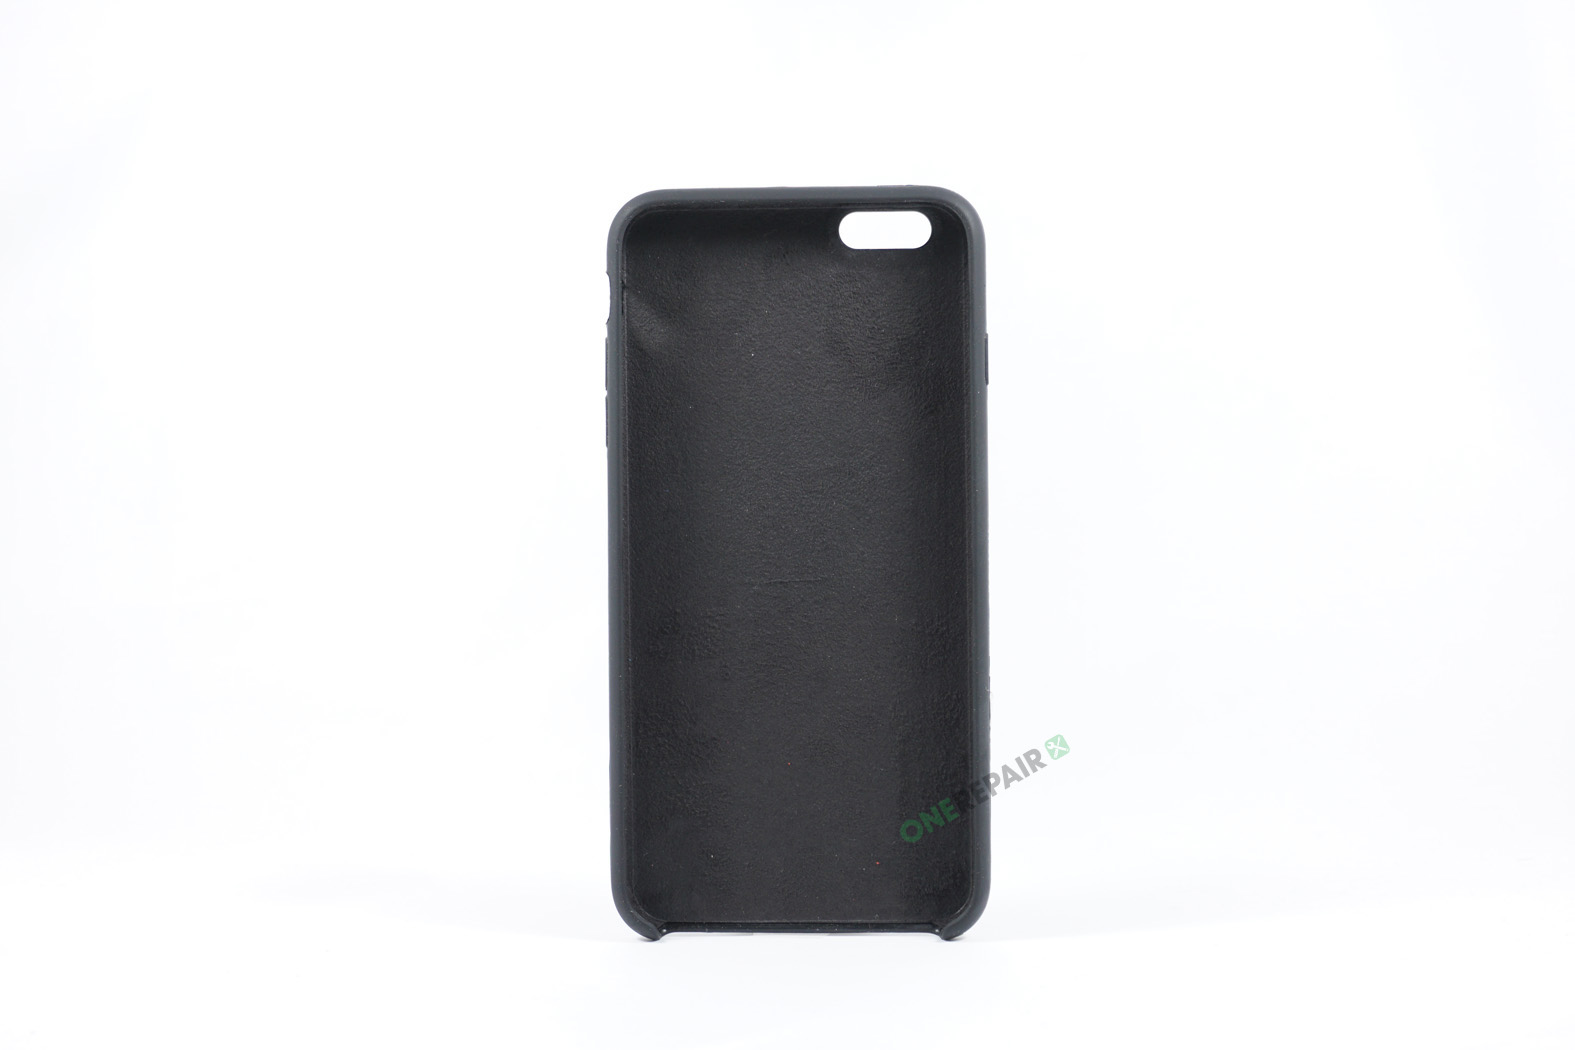 351431_iPhone_6+_6S+_Plus_Silikone_Cover_Sort_OneRepair_WM_00003